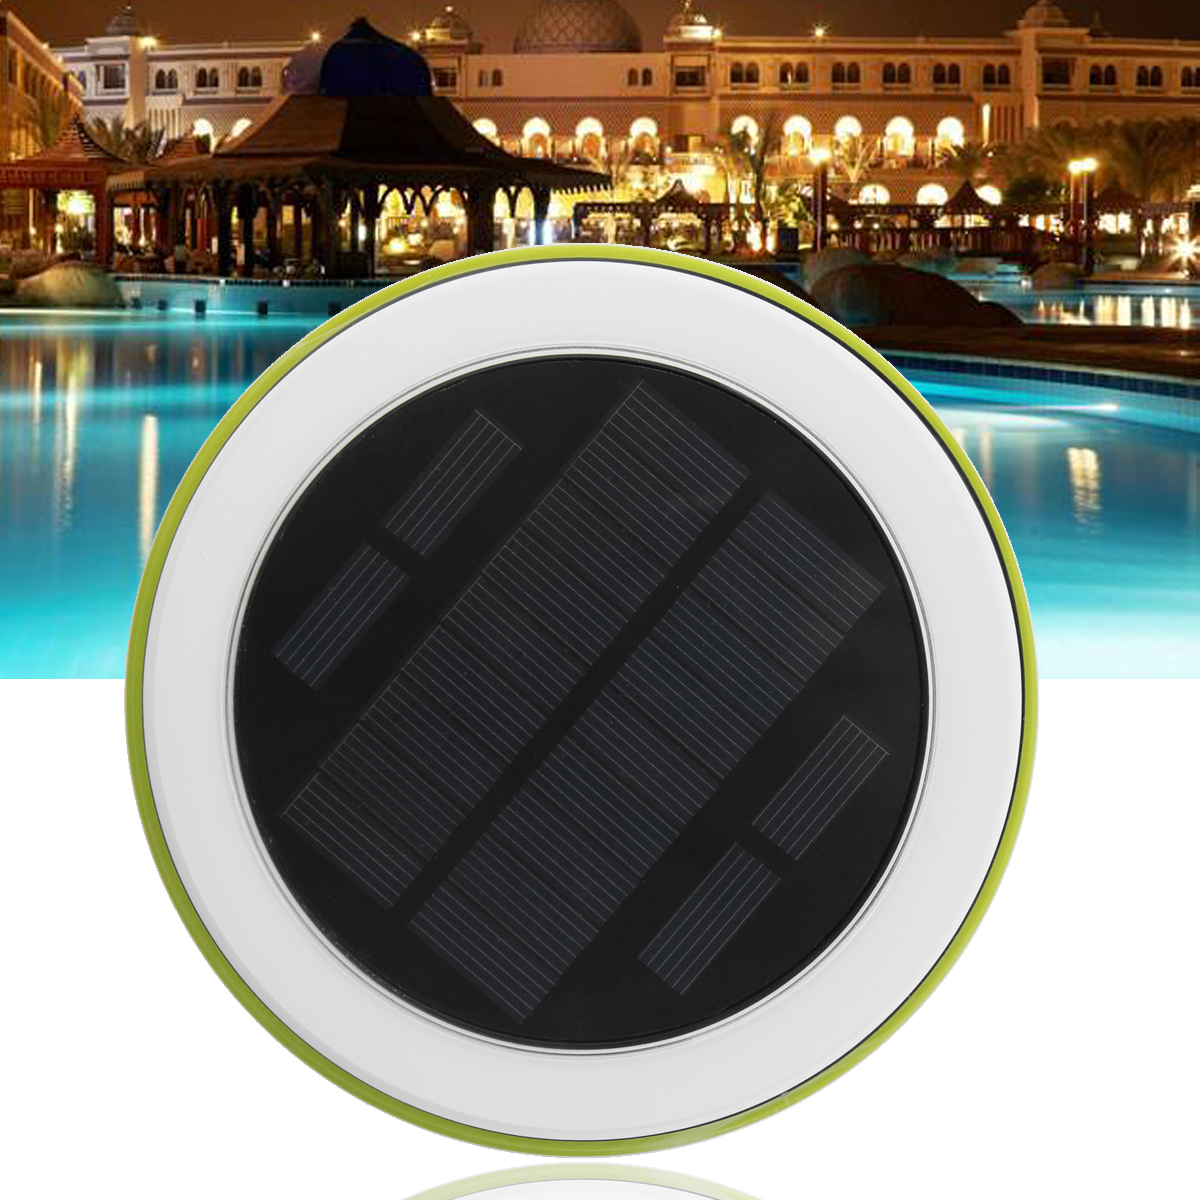 LED Underwater Light RGB Solar Power Pond Outdoor Swimming Pool Floating Waterproof Decorative LED Light With Remote Control